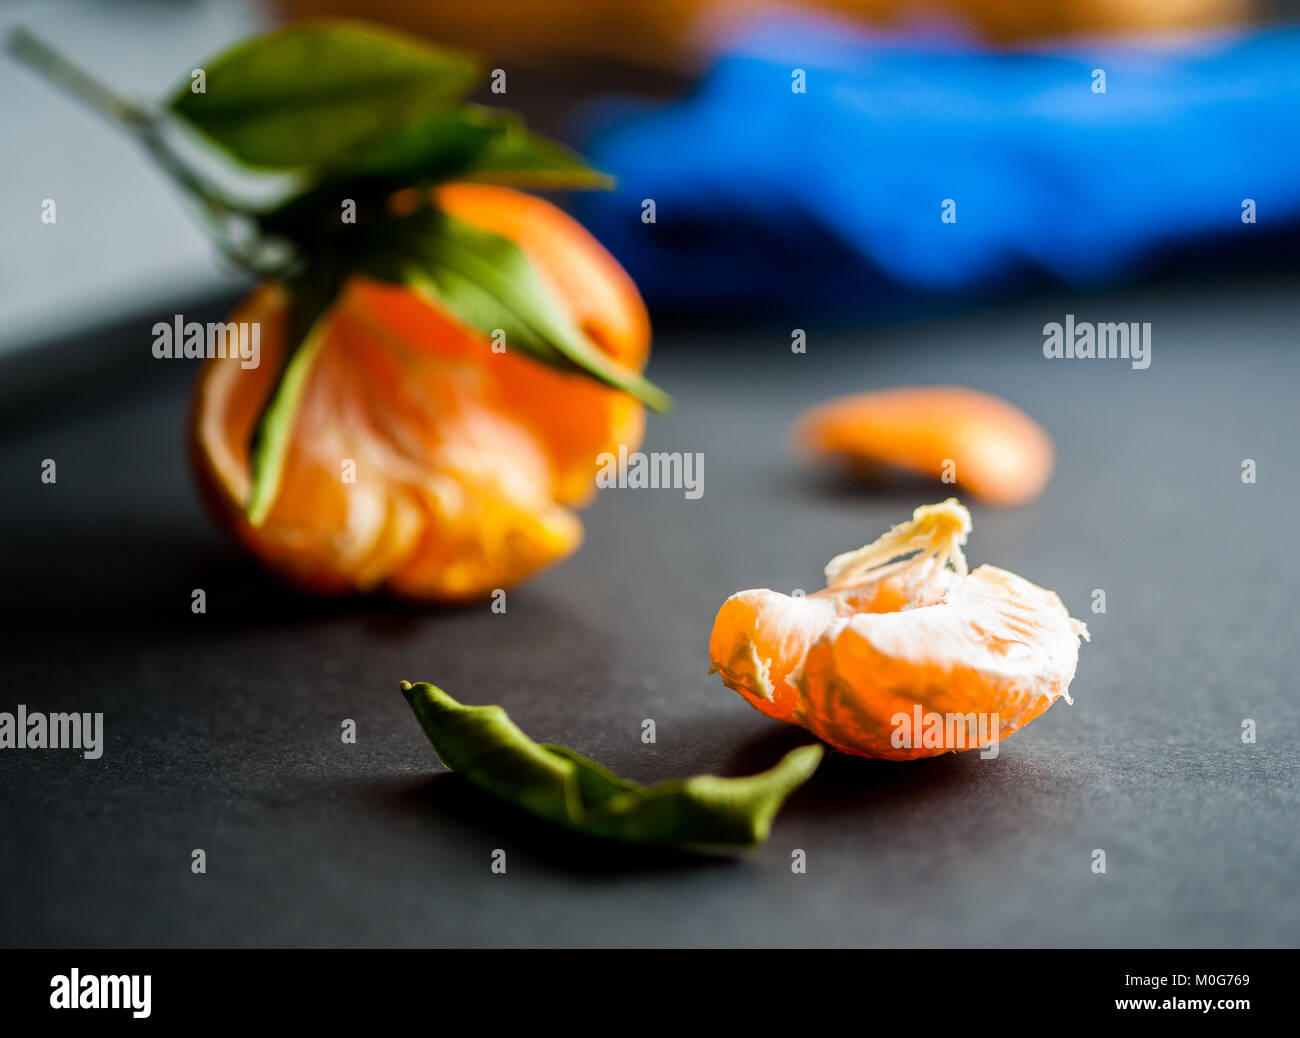 A close-up of a fresh juicy clementines with green leaves - Stock Image